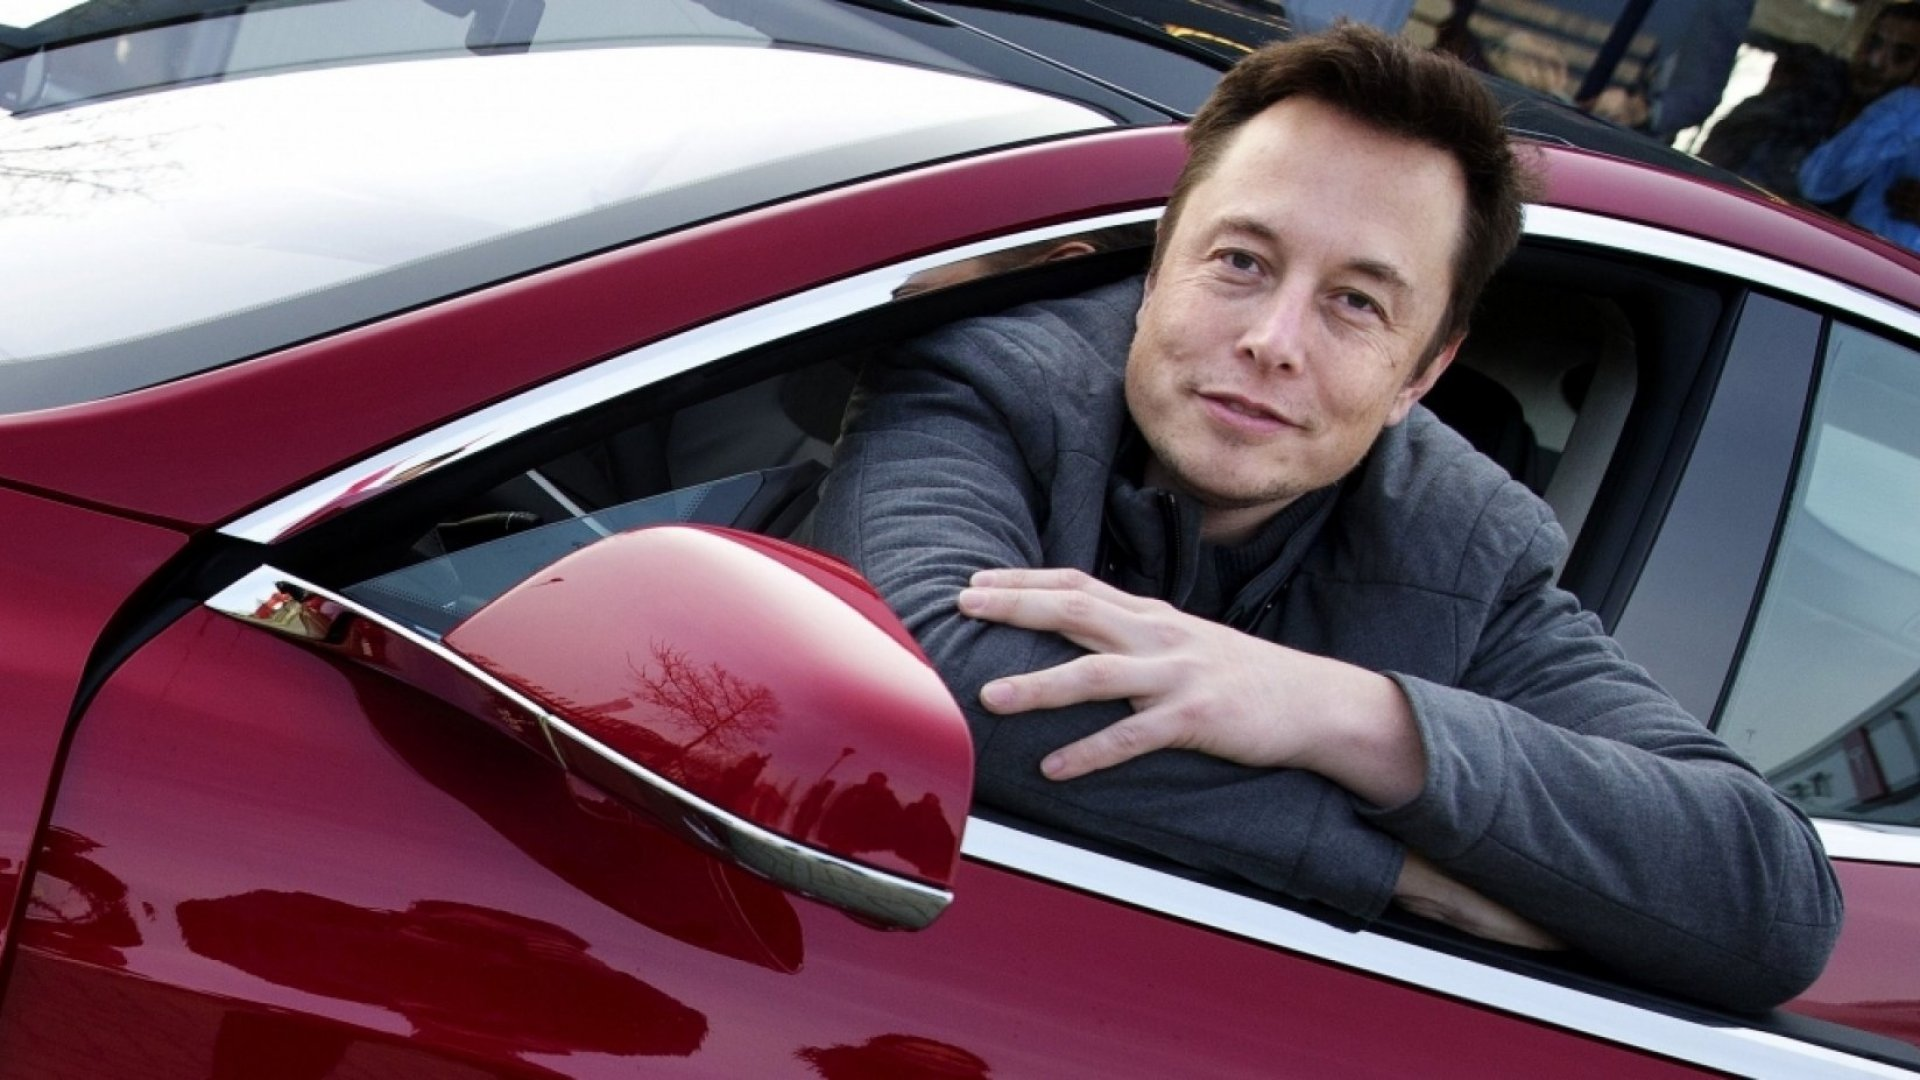 Maybe what Tesla needs is a Rocket Woman?